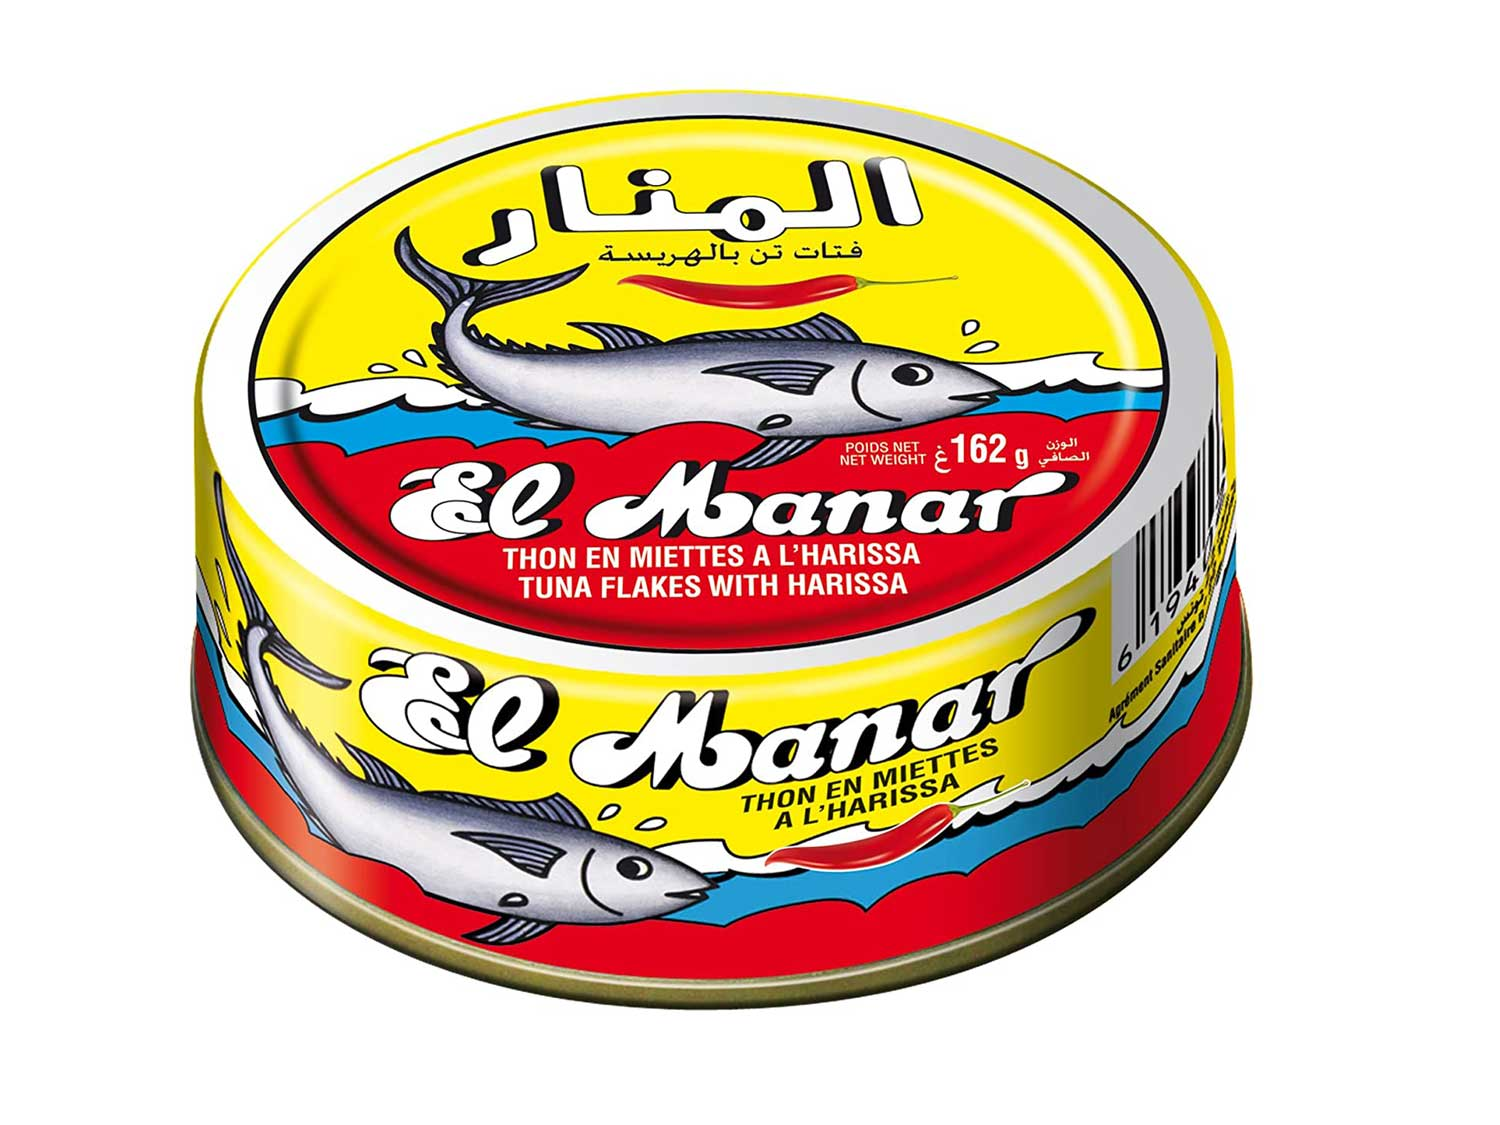 Light Tuna Flakes with Harissa - Canned Spicy Tuna Fish in Harissa Oil, from El Manar - 10-Pack of 160g Cans